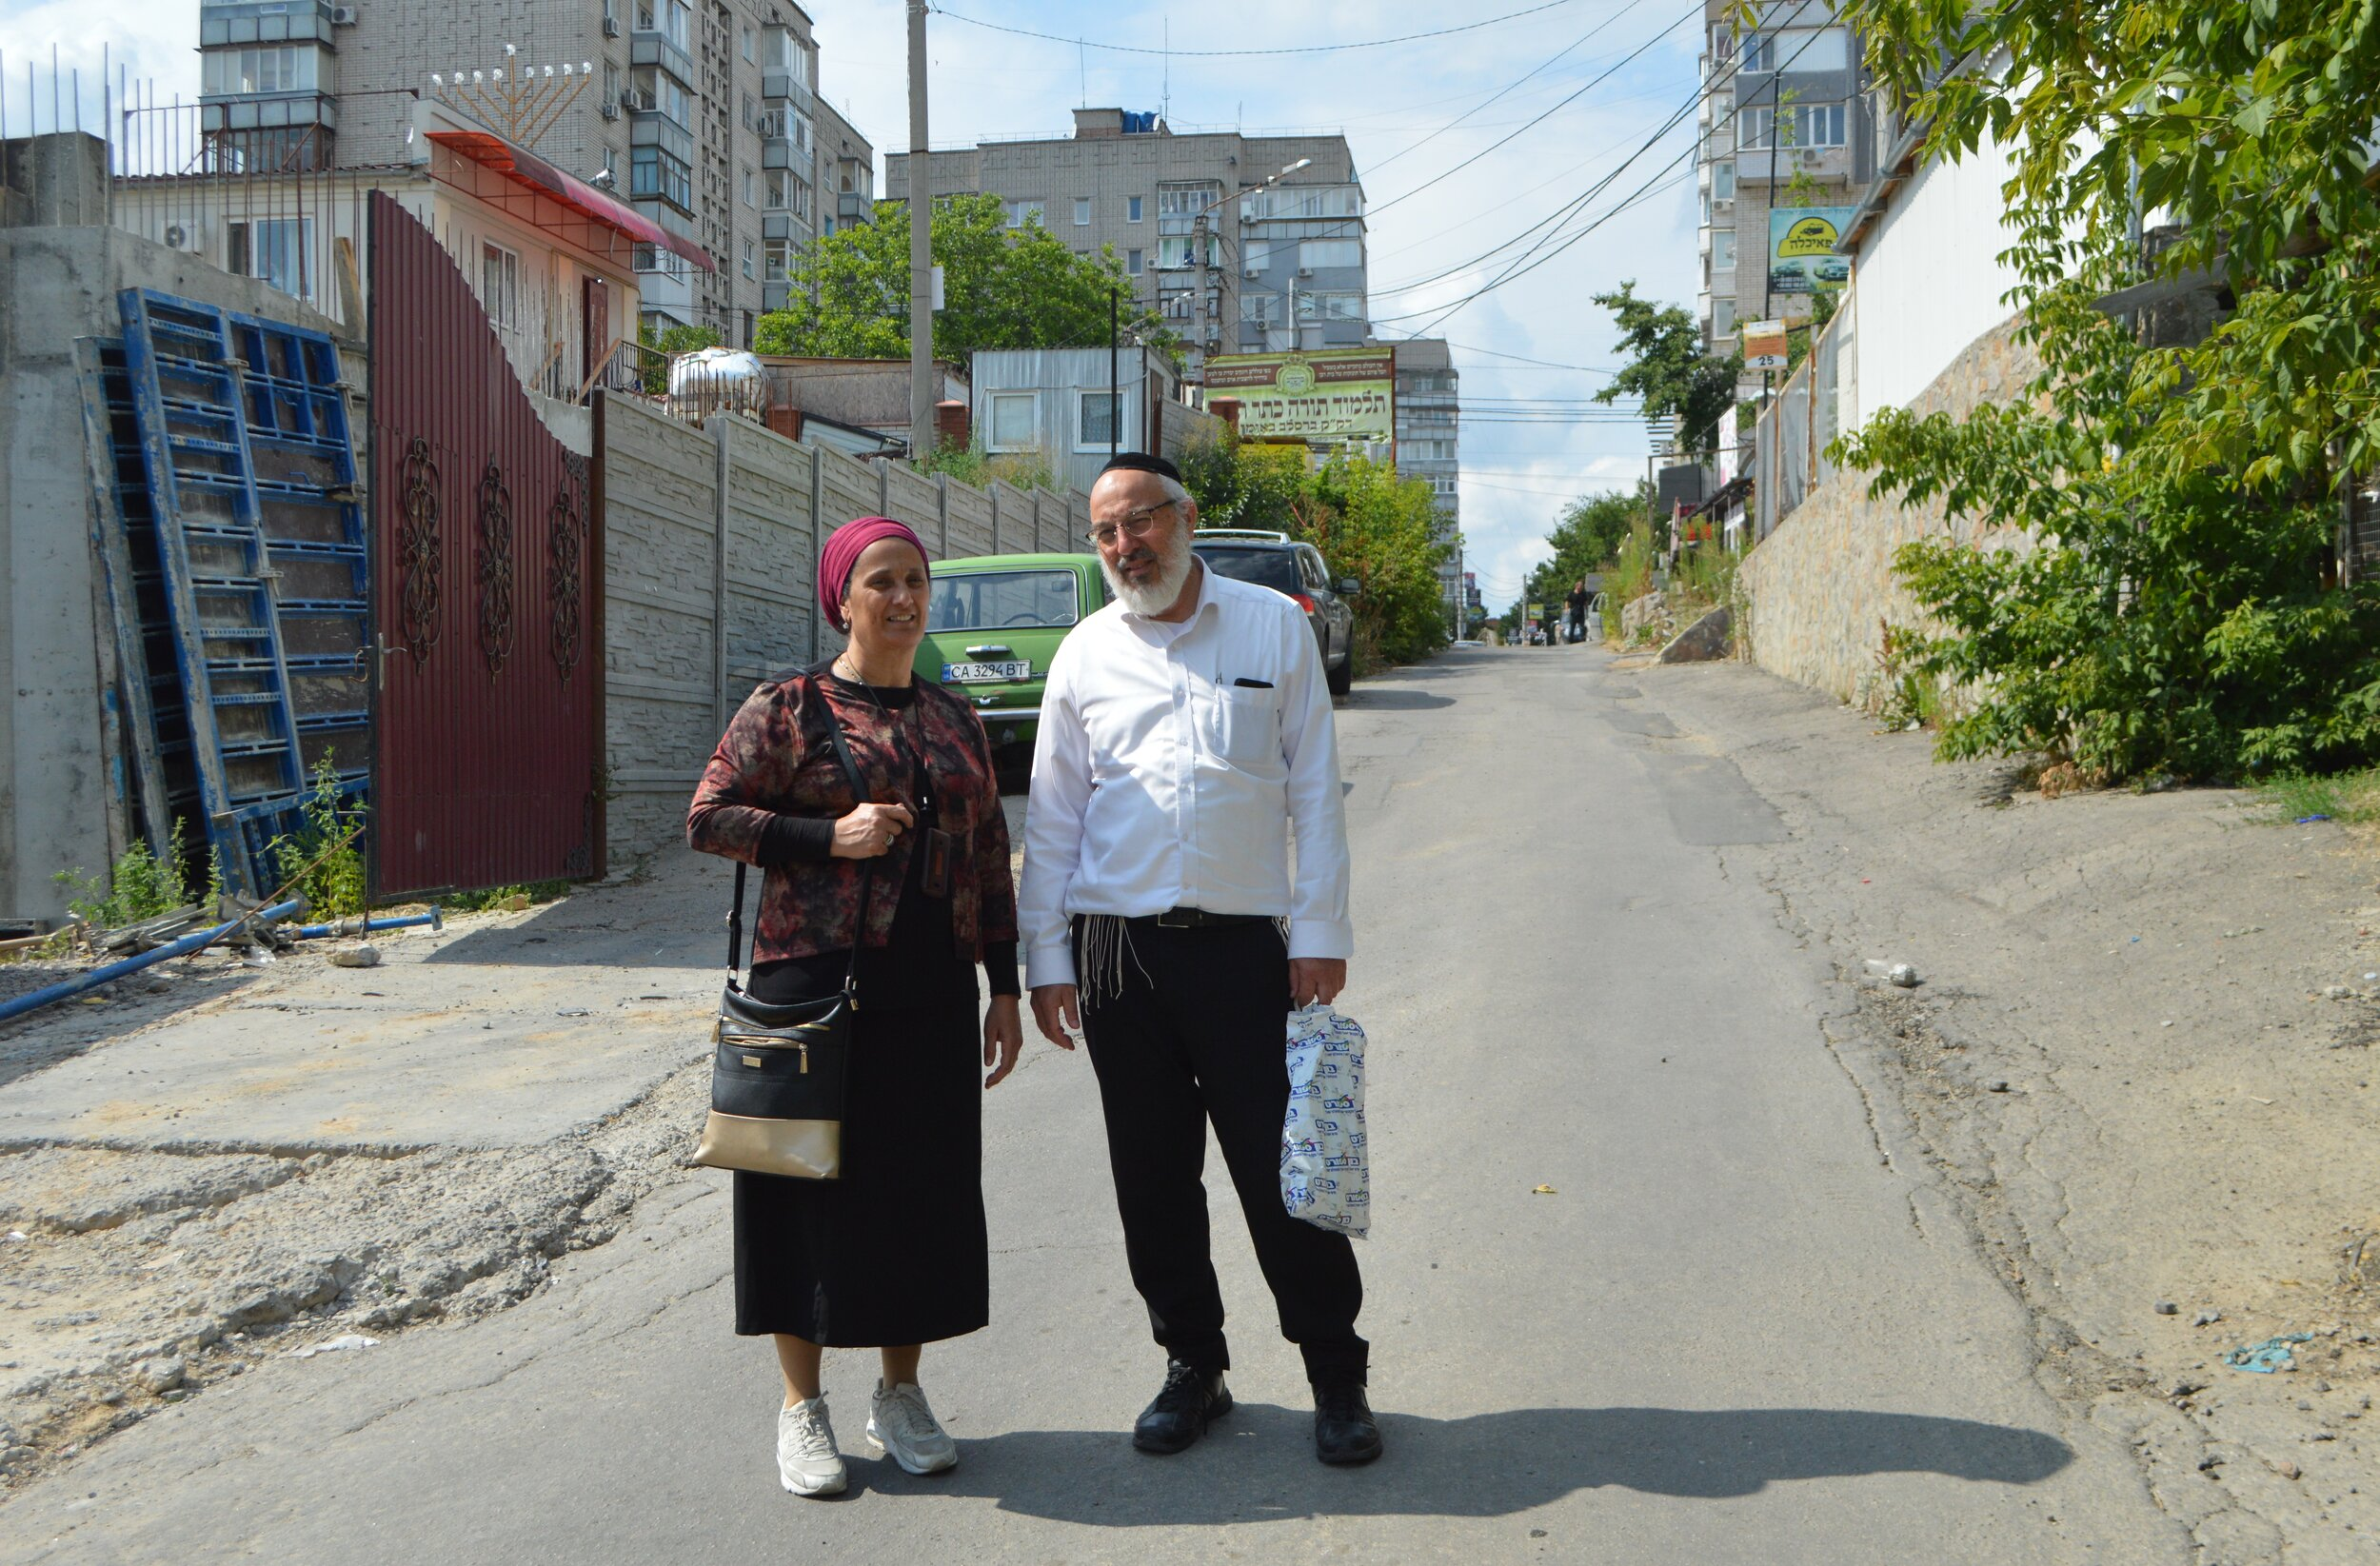 Eli Mammon and his wife Ofira from Jerusalem take the chance to visit Uman in the off-season before Rosh Hashanah. Photo by Paul Brian.